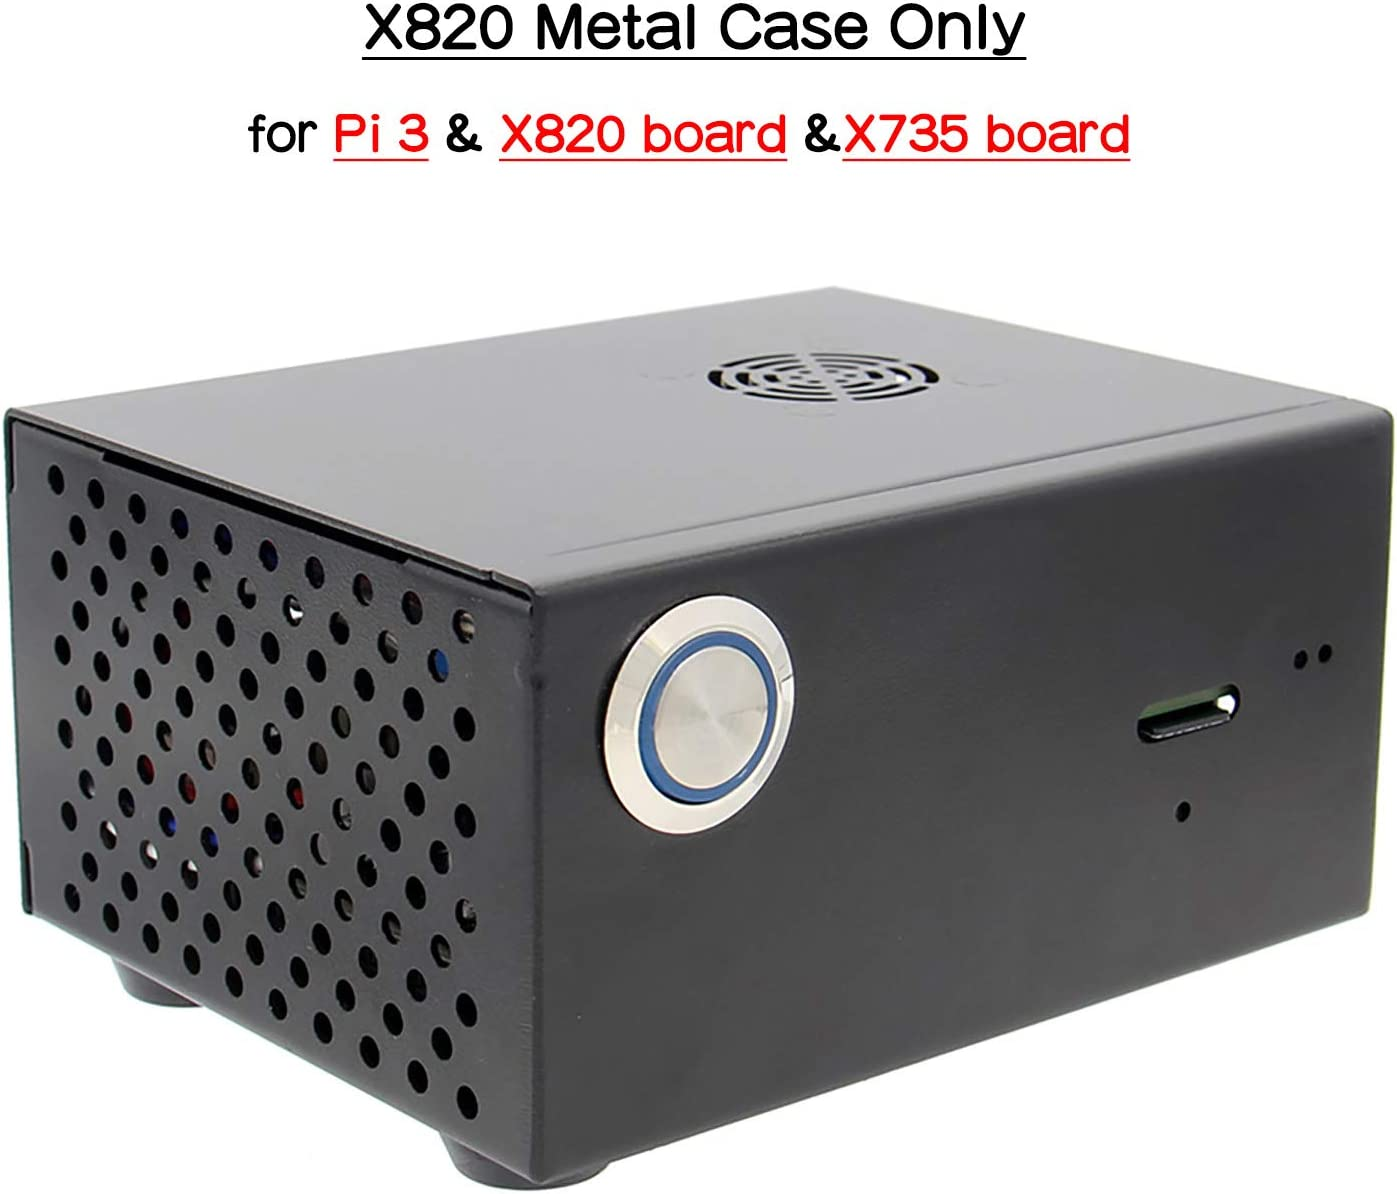 Geekworm Raspberry Pi 3 X820 Metal Case/Enclosure + Power Control Switch + Cooling Fan Kit Support X820 V3.0 SSD&HDD SATA Storage Board&X735/Rock64(Not Support X825)